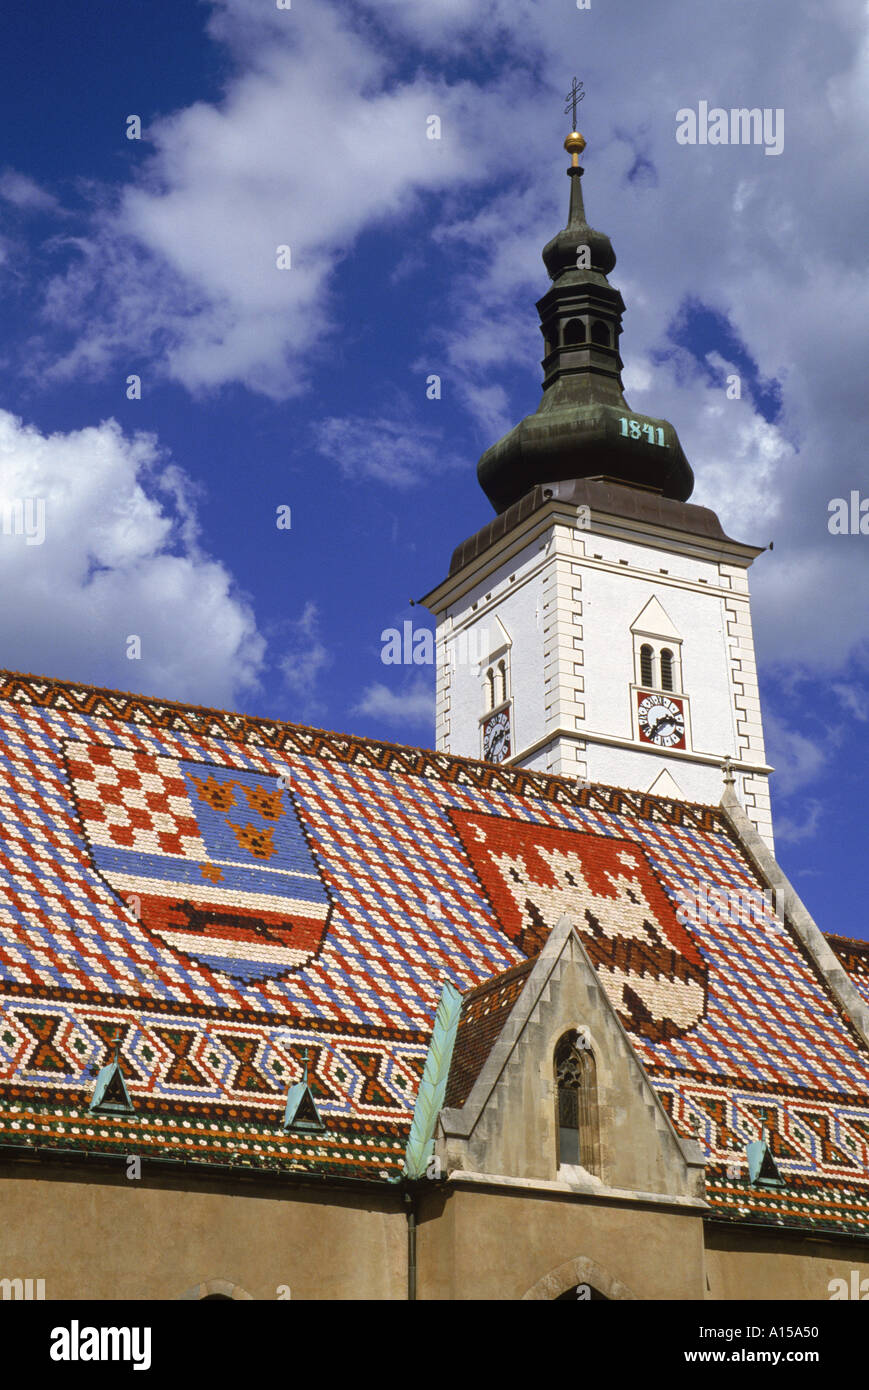 Close up of tile roof with pattern of shields and clock tower of St Marks church Zagreb Croatia K Gillham - Stock Image